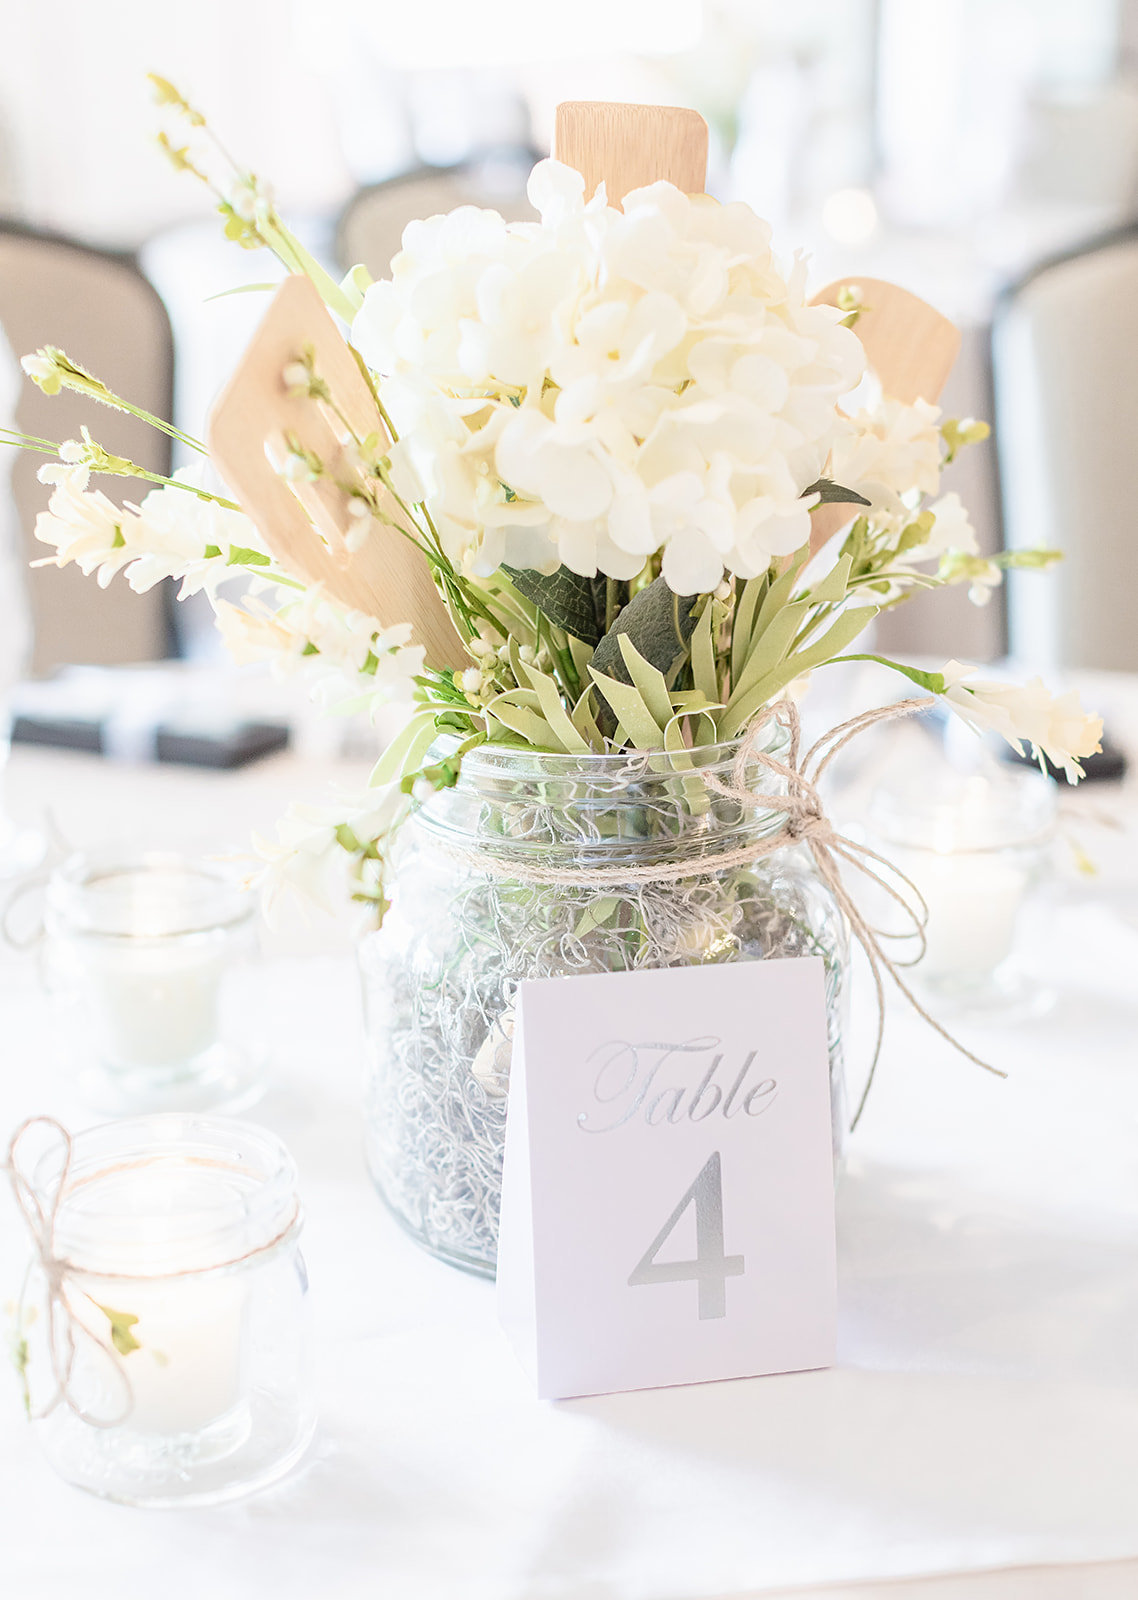 Table number ideas for bridal shower